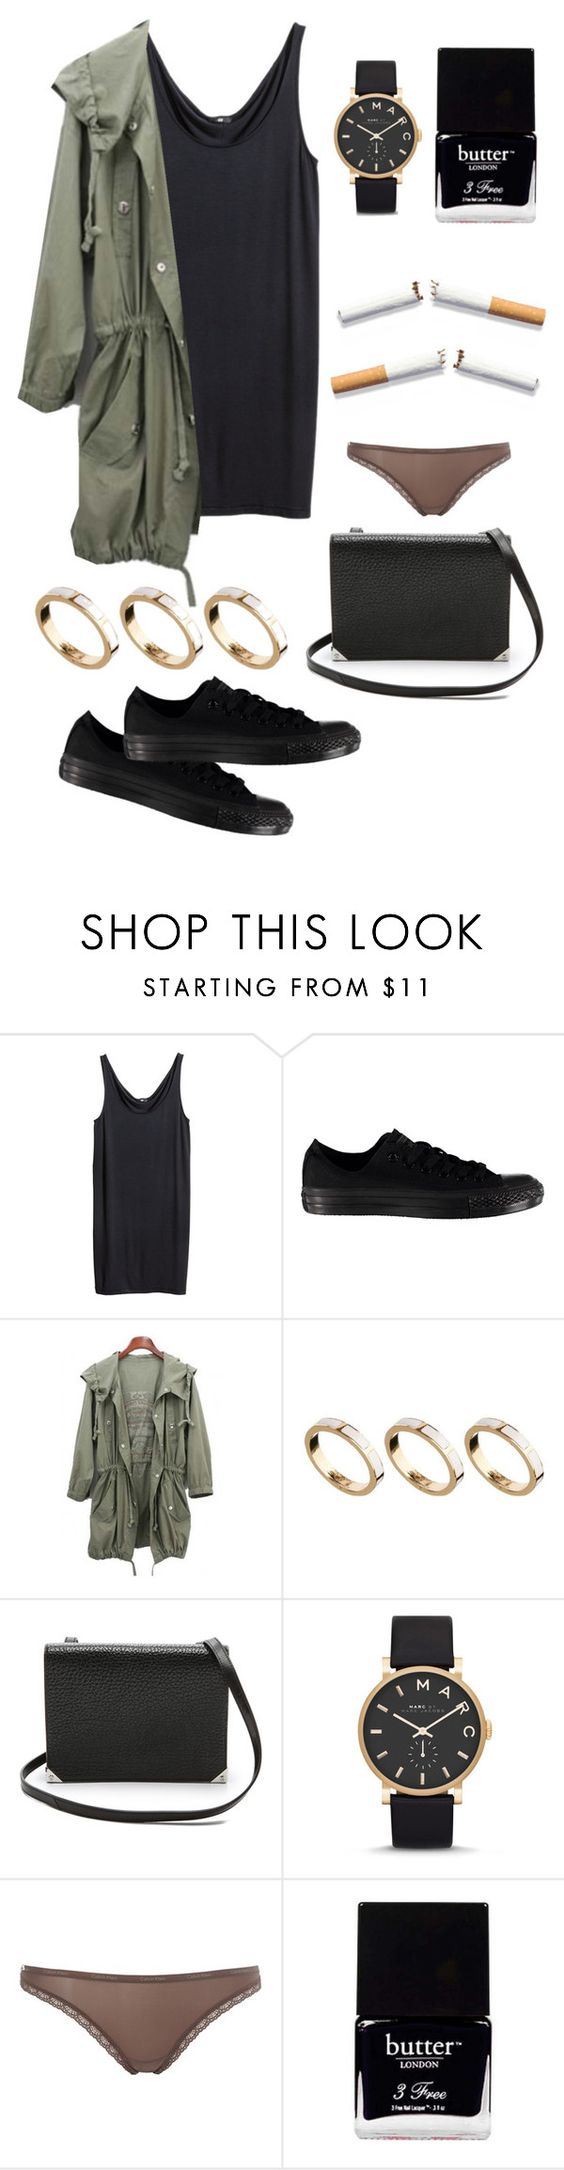 """""""Shopping days."""" by sirenex ❤ liked on Polyvore featuring H&M, Converse, ASOS, Alexander Wang, Marc by Marc Jacobs, Calvin Klein, Butter London, women's clothing, women and female"""